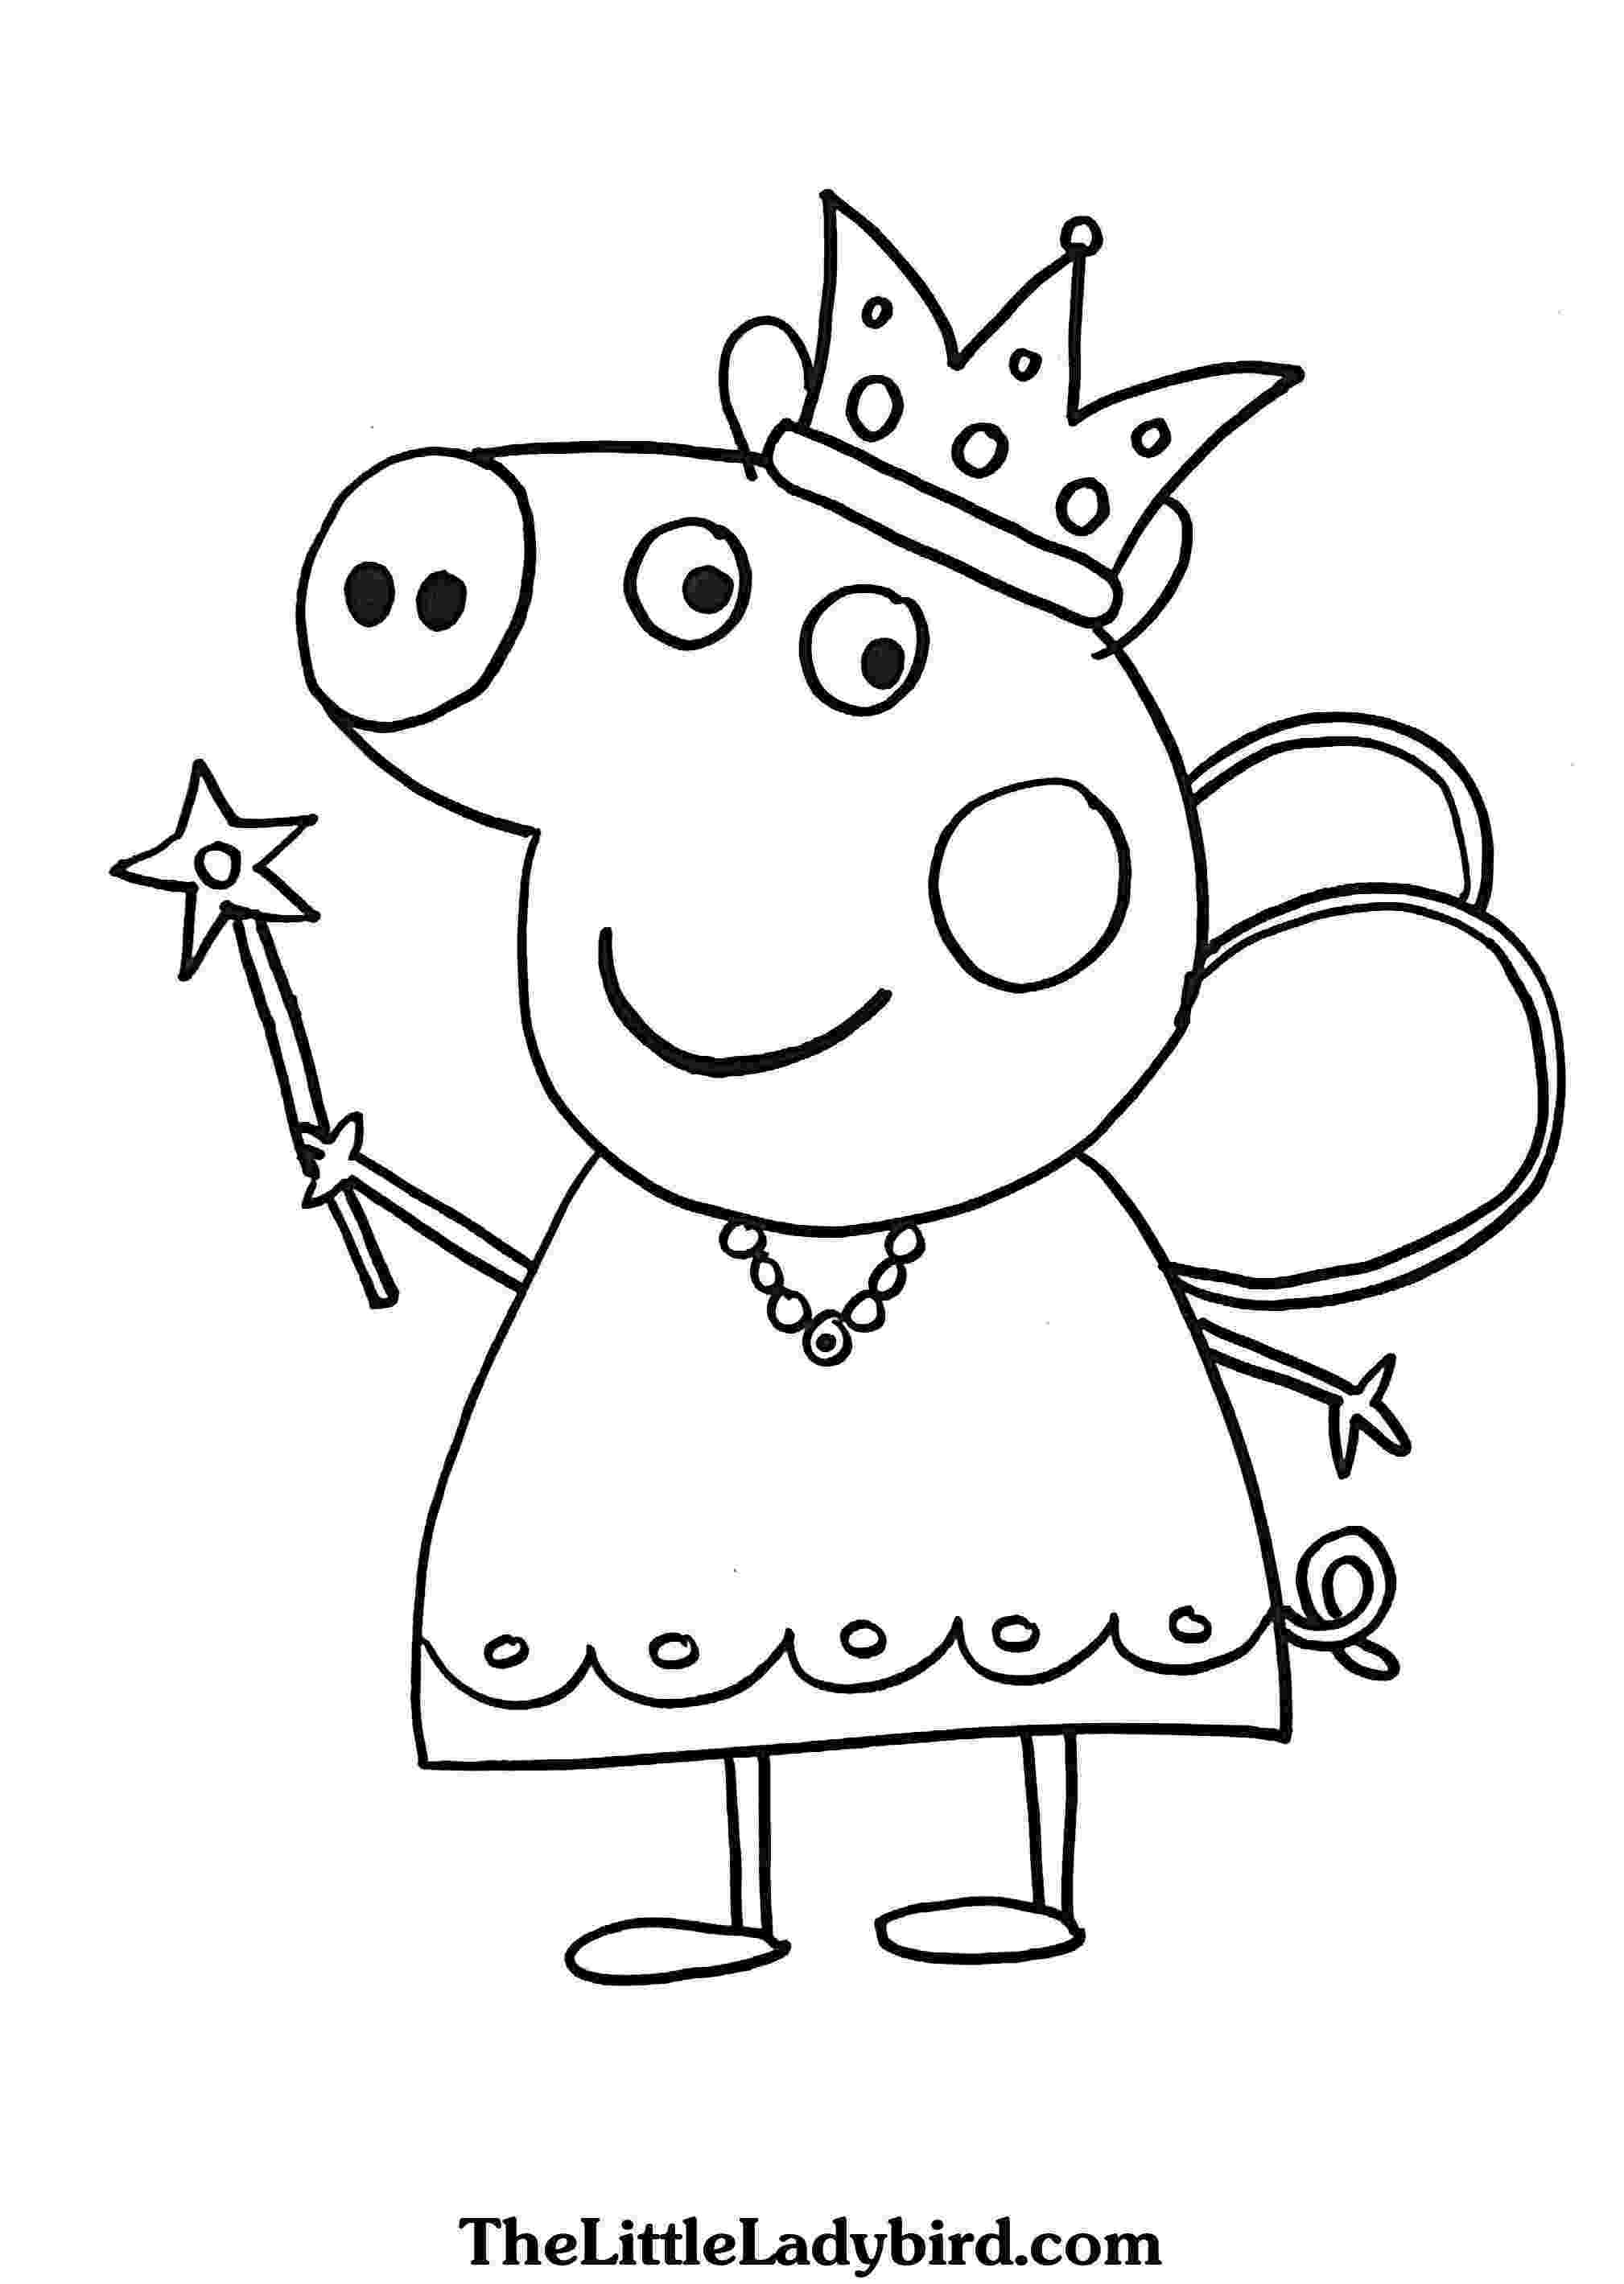 peppa pig colouring pages online peppa pig coloring pages to print for free and color colouring online pig peppa pages